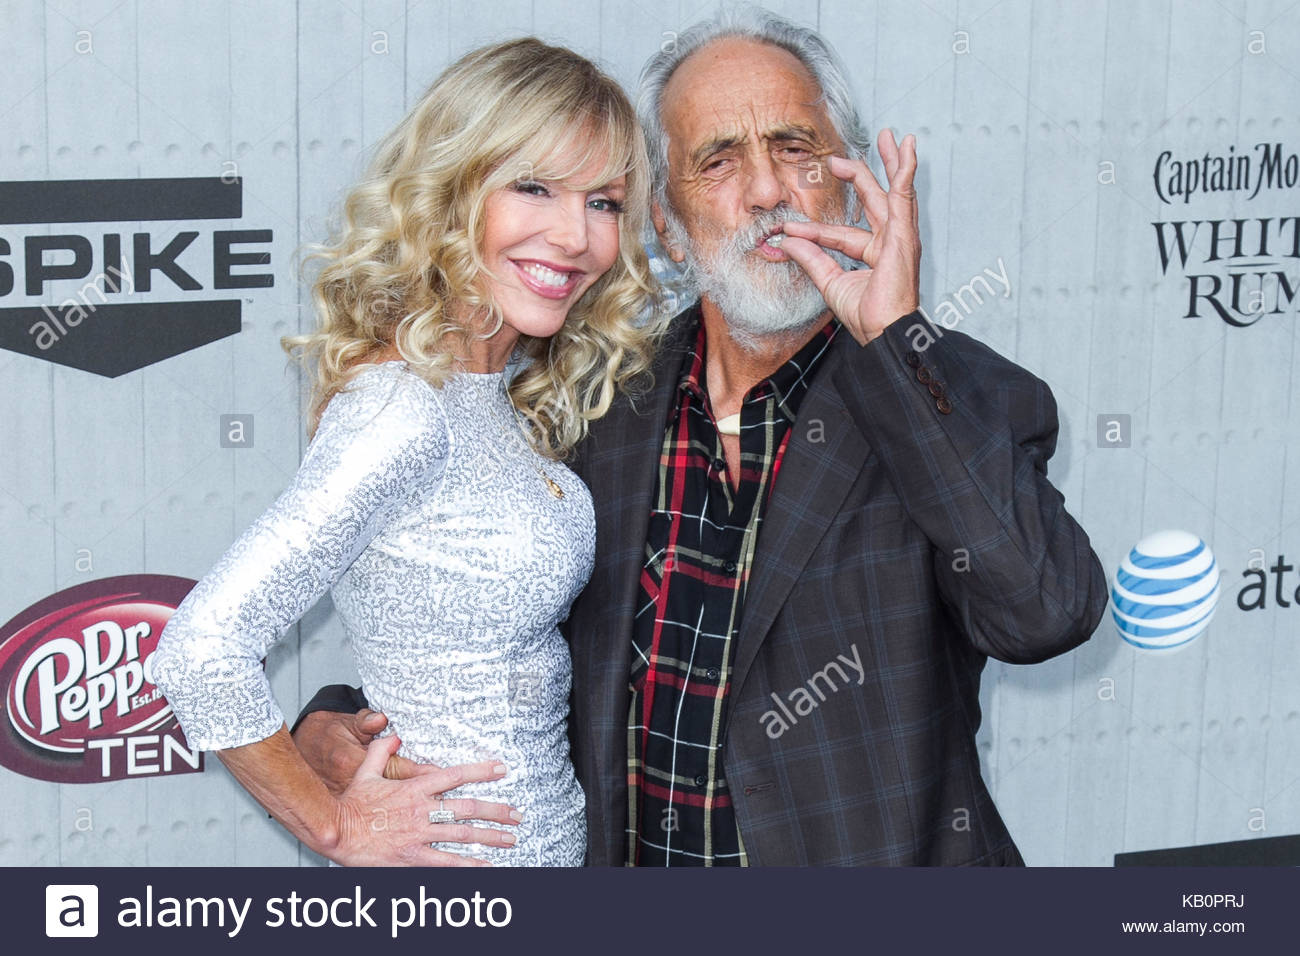 Forum on this topic: Tom Busby, shelby-chong/